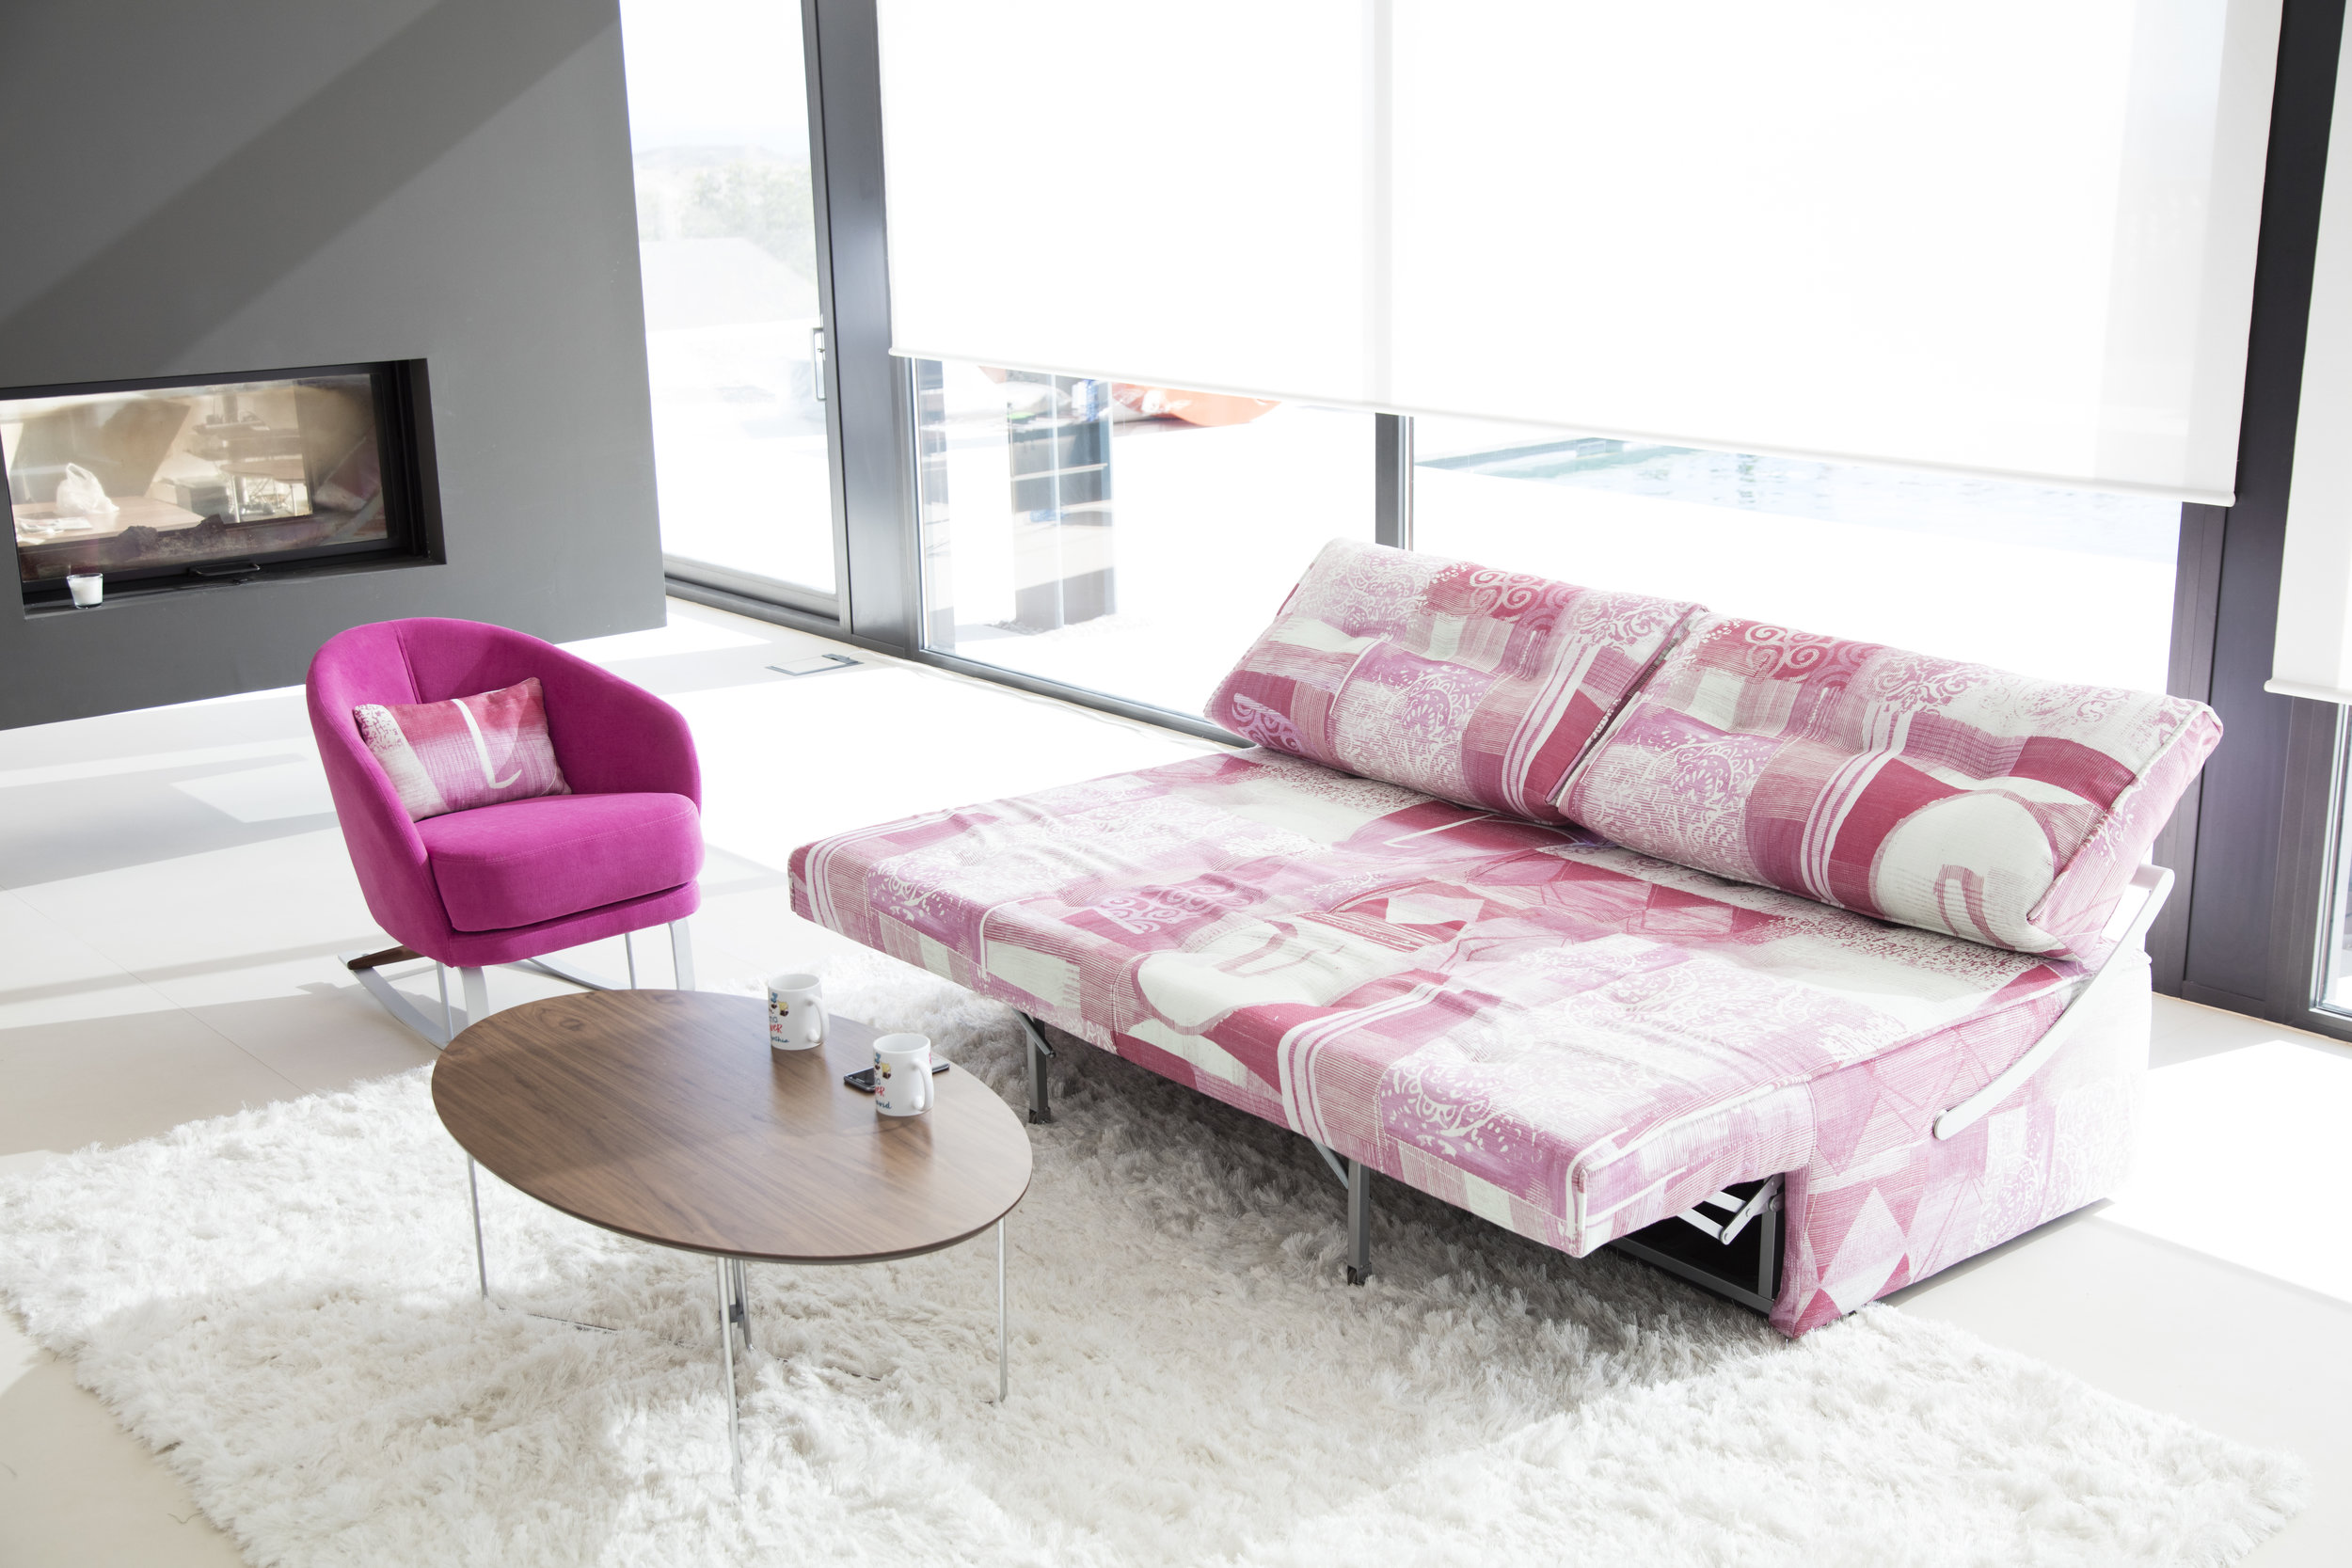 INDY FAMALIVING MEXICO SOFA CAMA 18.jpg